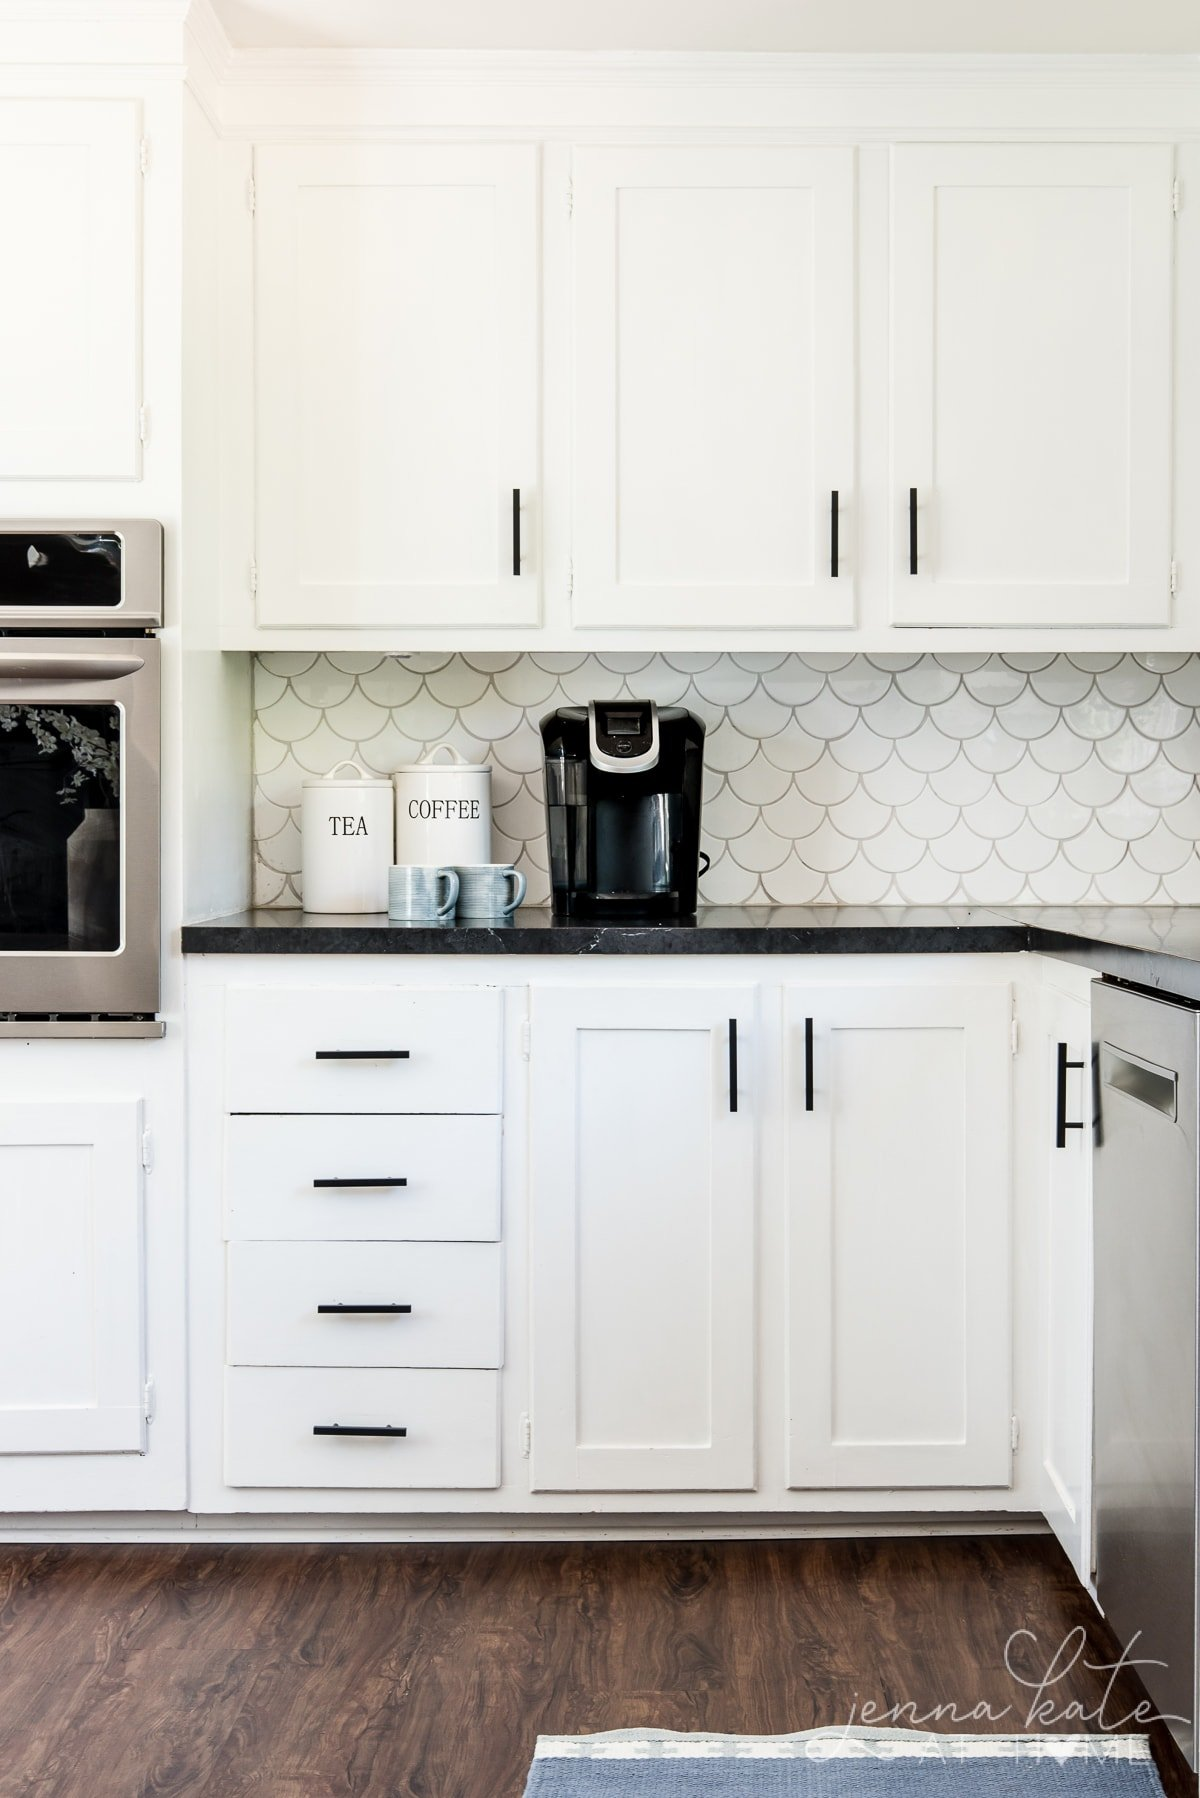 Matte black kitchen pulls are an inexpensive upgrade